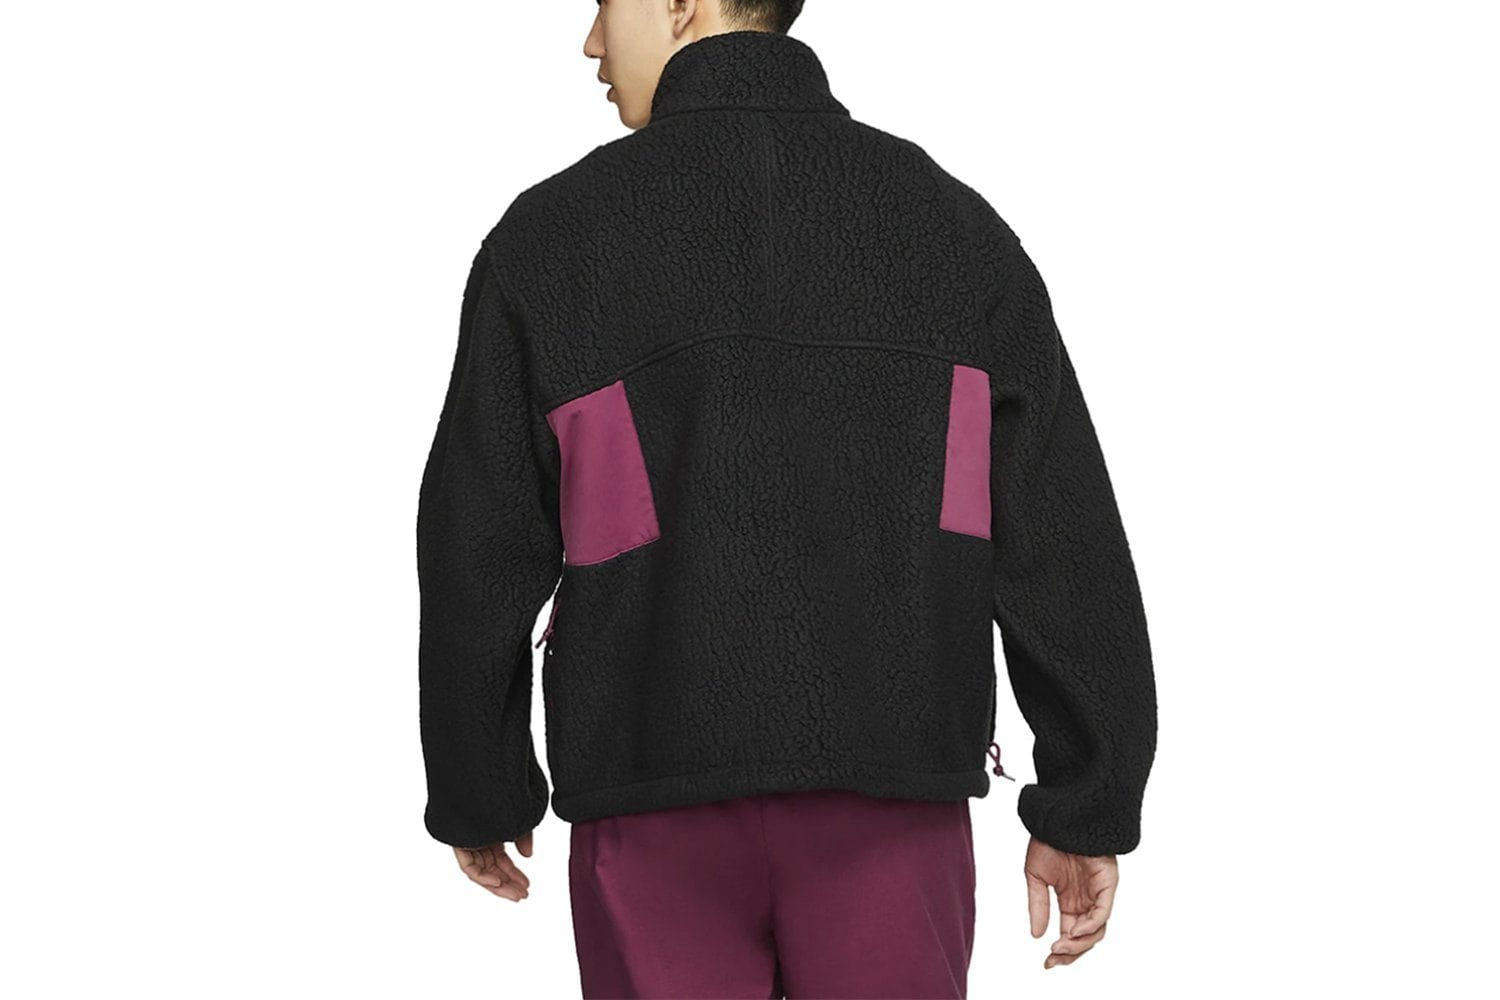 Nike ACG Fleece Jacket CT2949 010 | BSTN Store